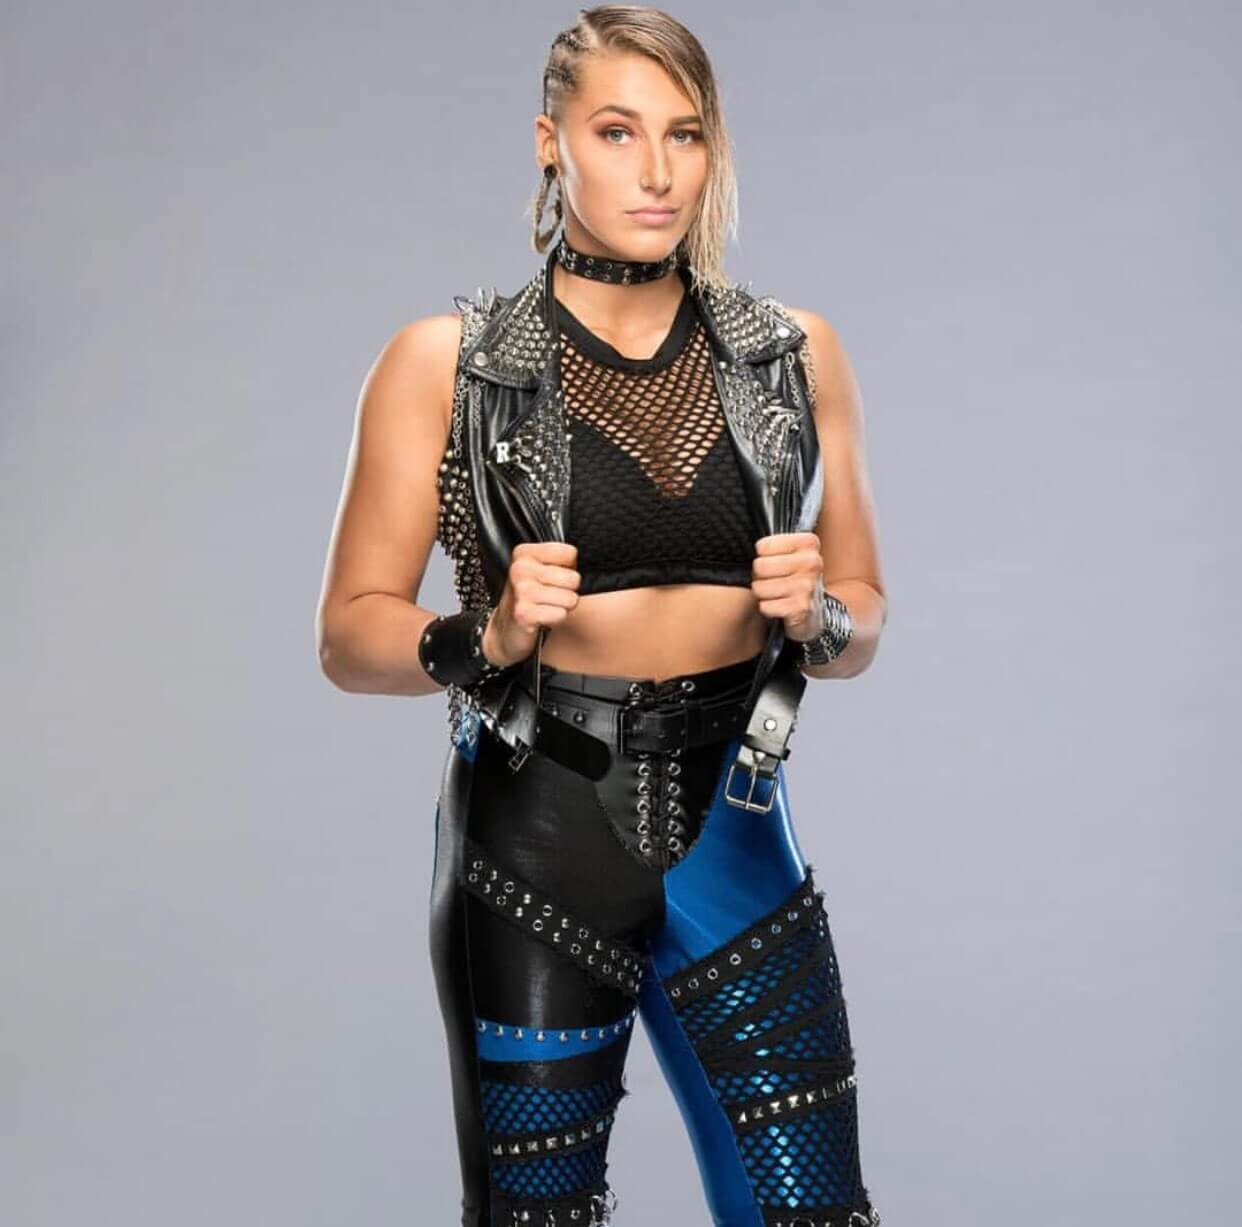 70 Hot Pictures Of Rhea Ripley Which Are Wet Dreams Stuff Best